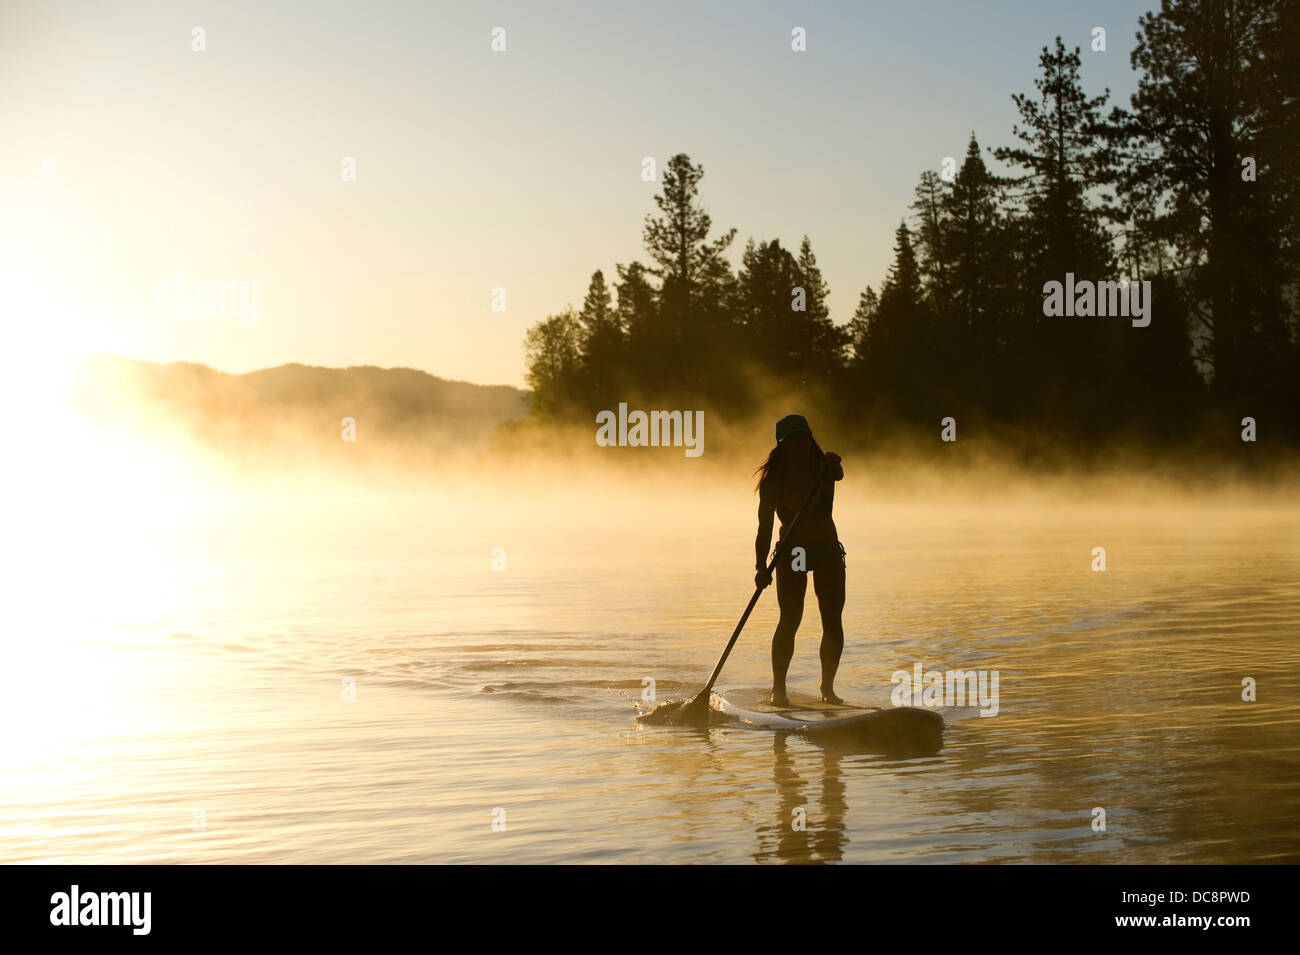 A woman, is silhouetted Stand Up Paddleboarding (SUP) at sunrise in the mist in Lake Tahoe, CA. - Stock Image